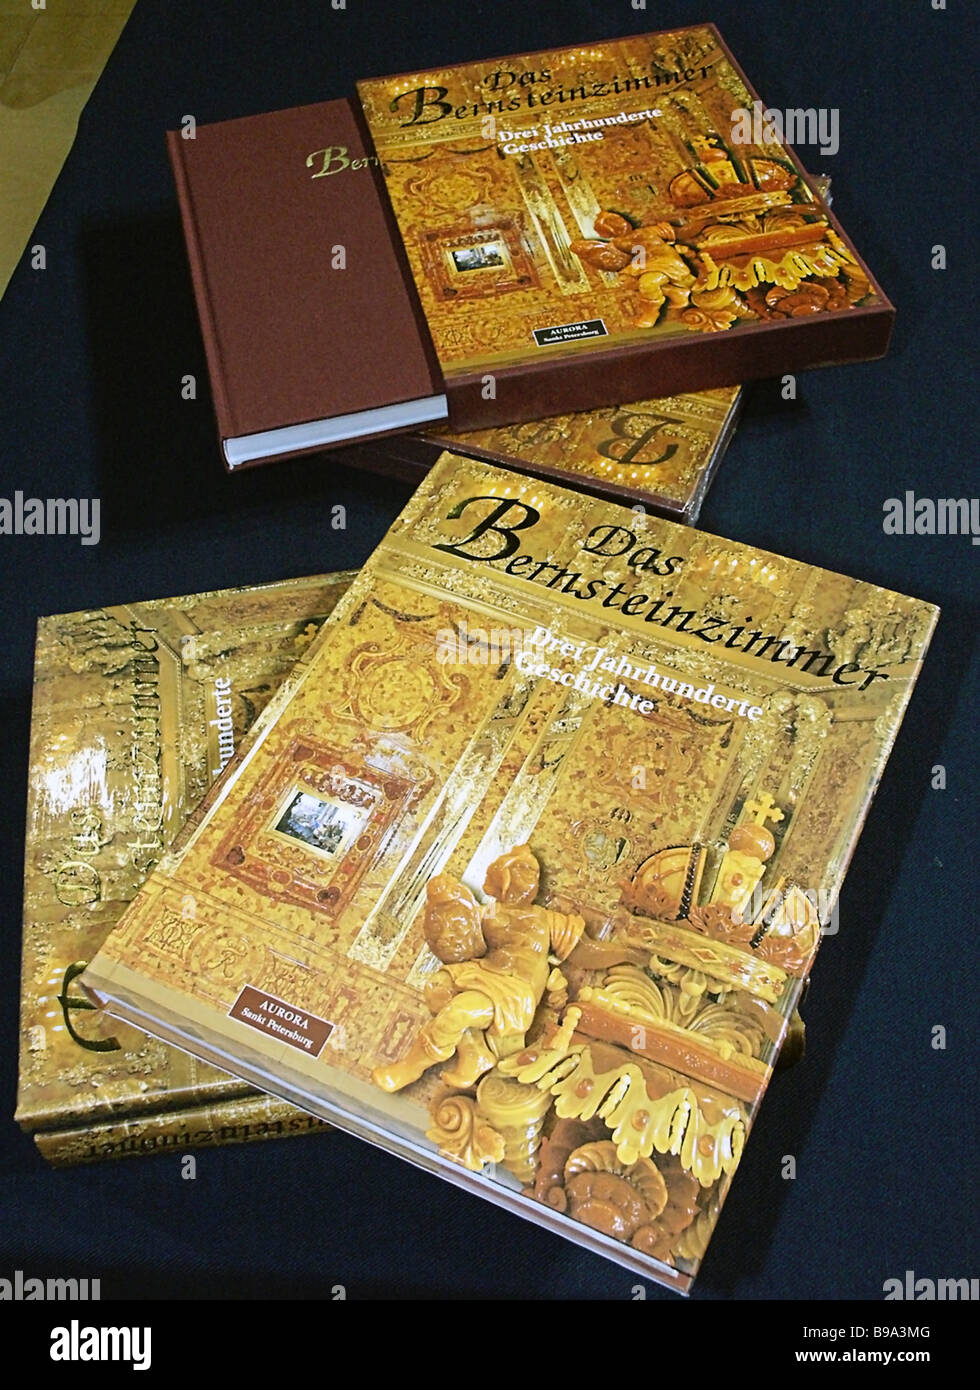 The presentation of the album The Amber Room published by the Russian publisher Avrora at the International Book - Stock Image